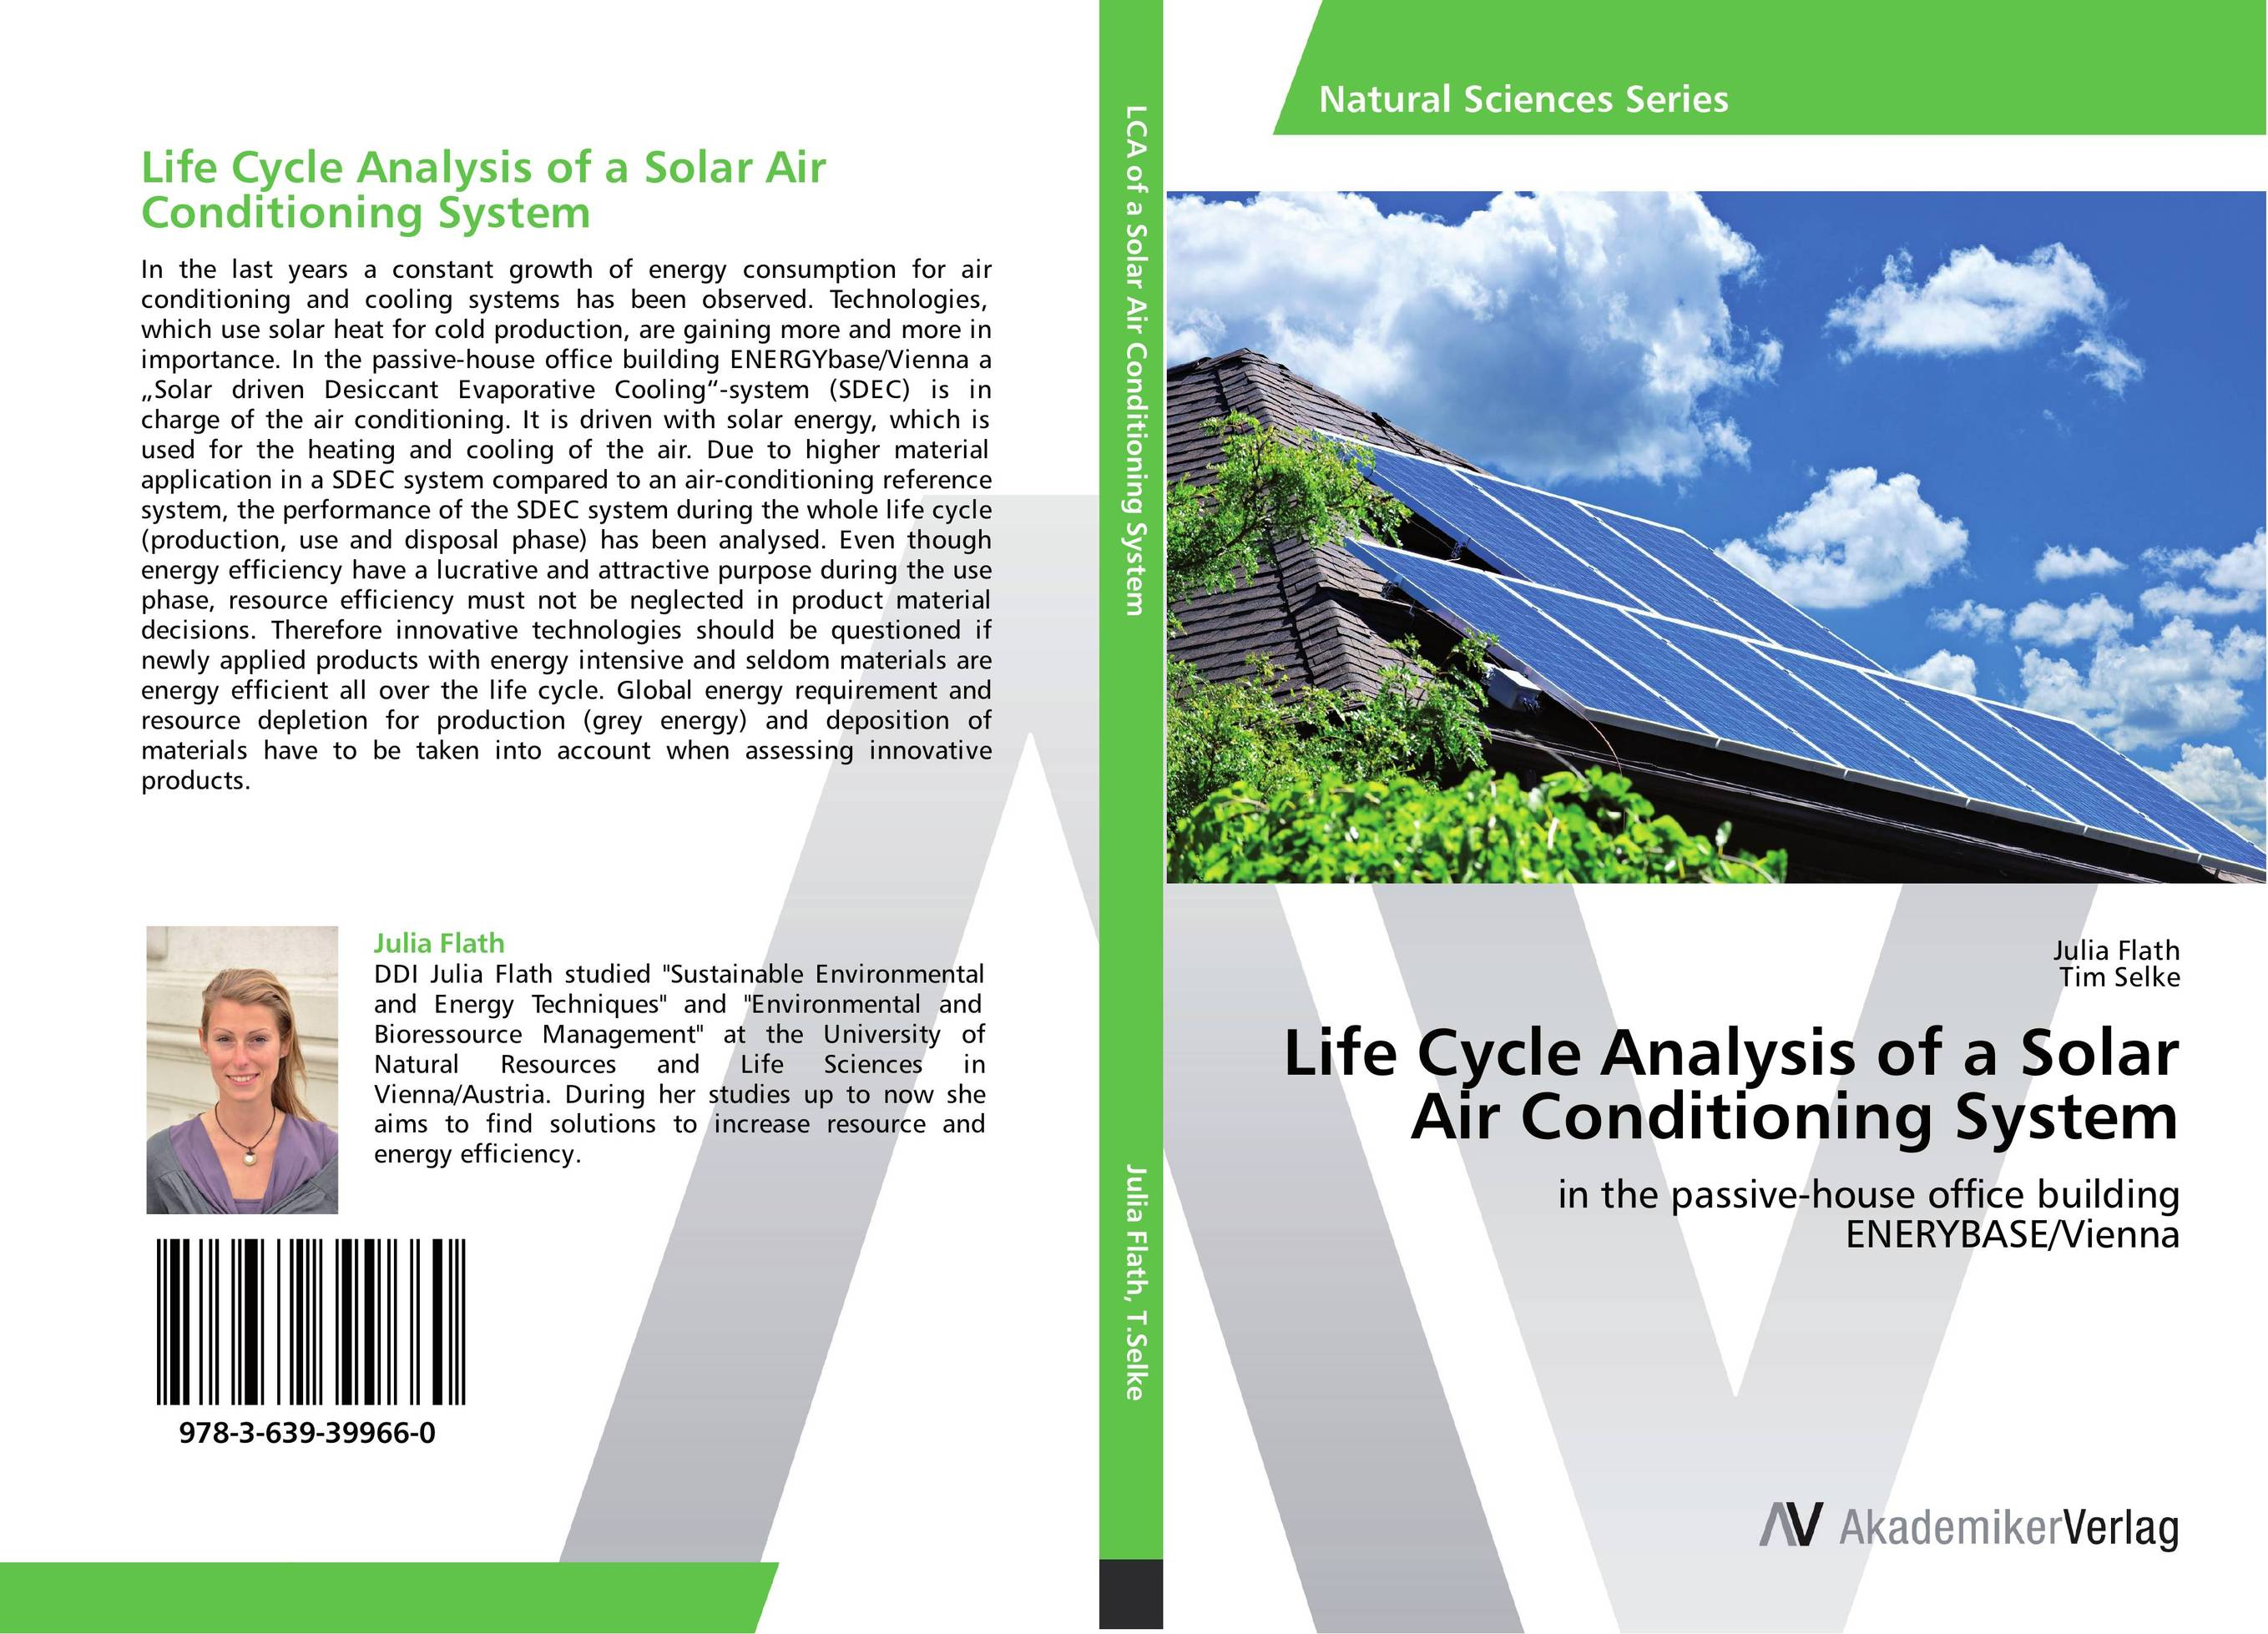 Life Cycle Analysis of a Solar Air Conditioning System driven to distraction